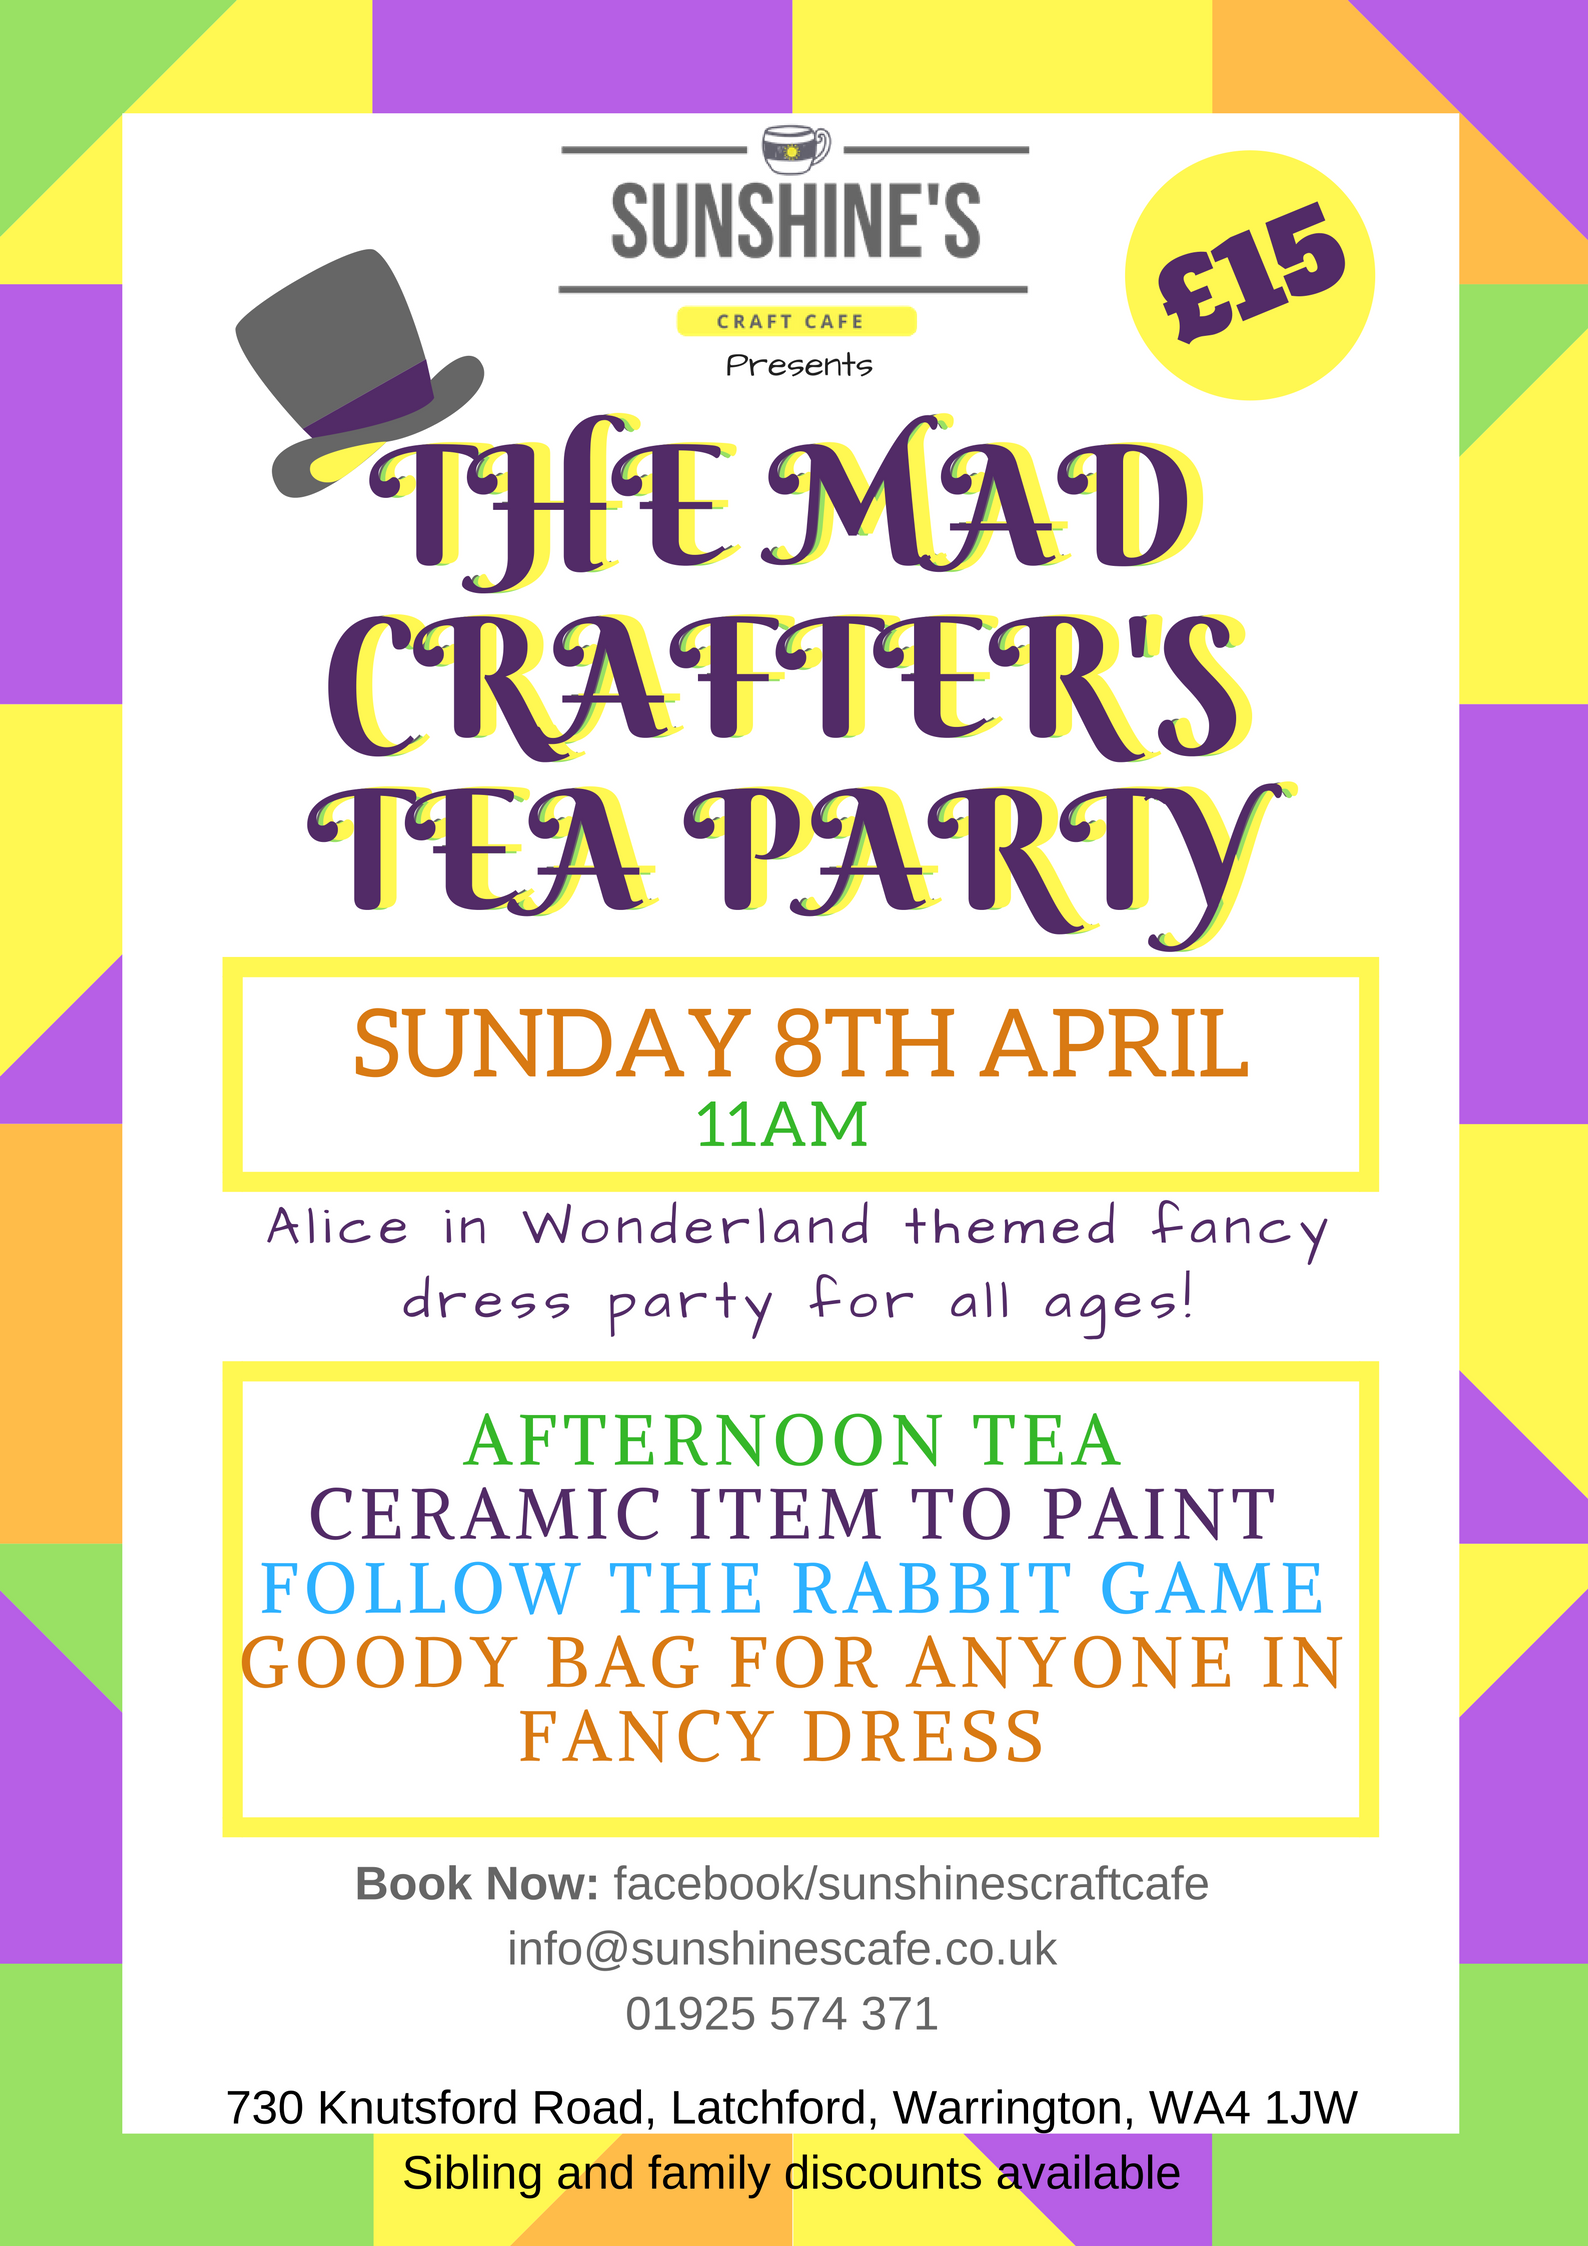 The Mad Crafter's Tea Party